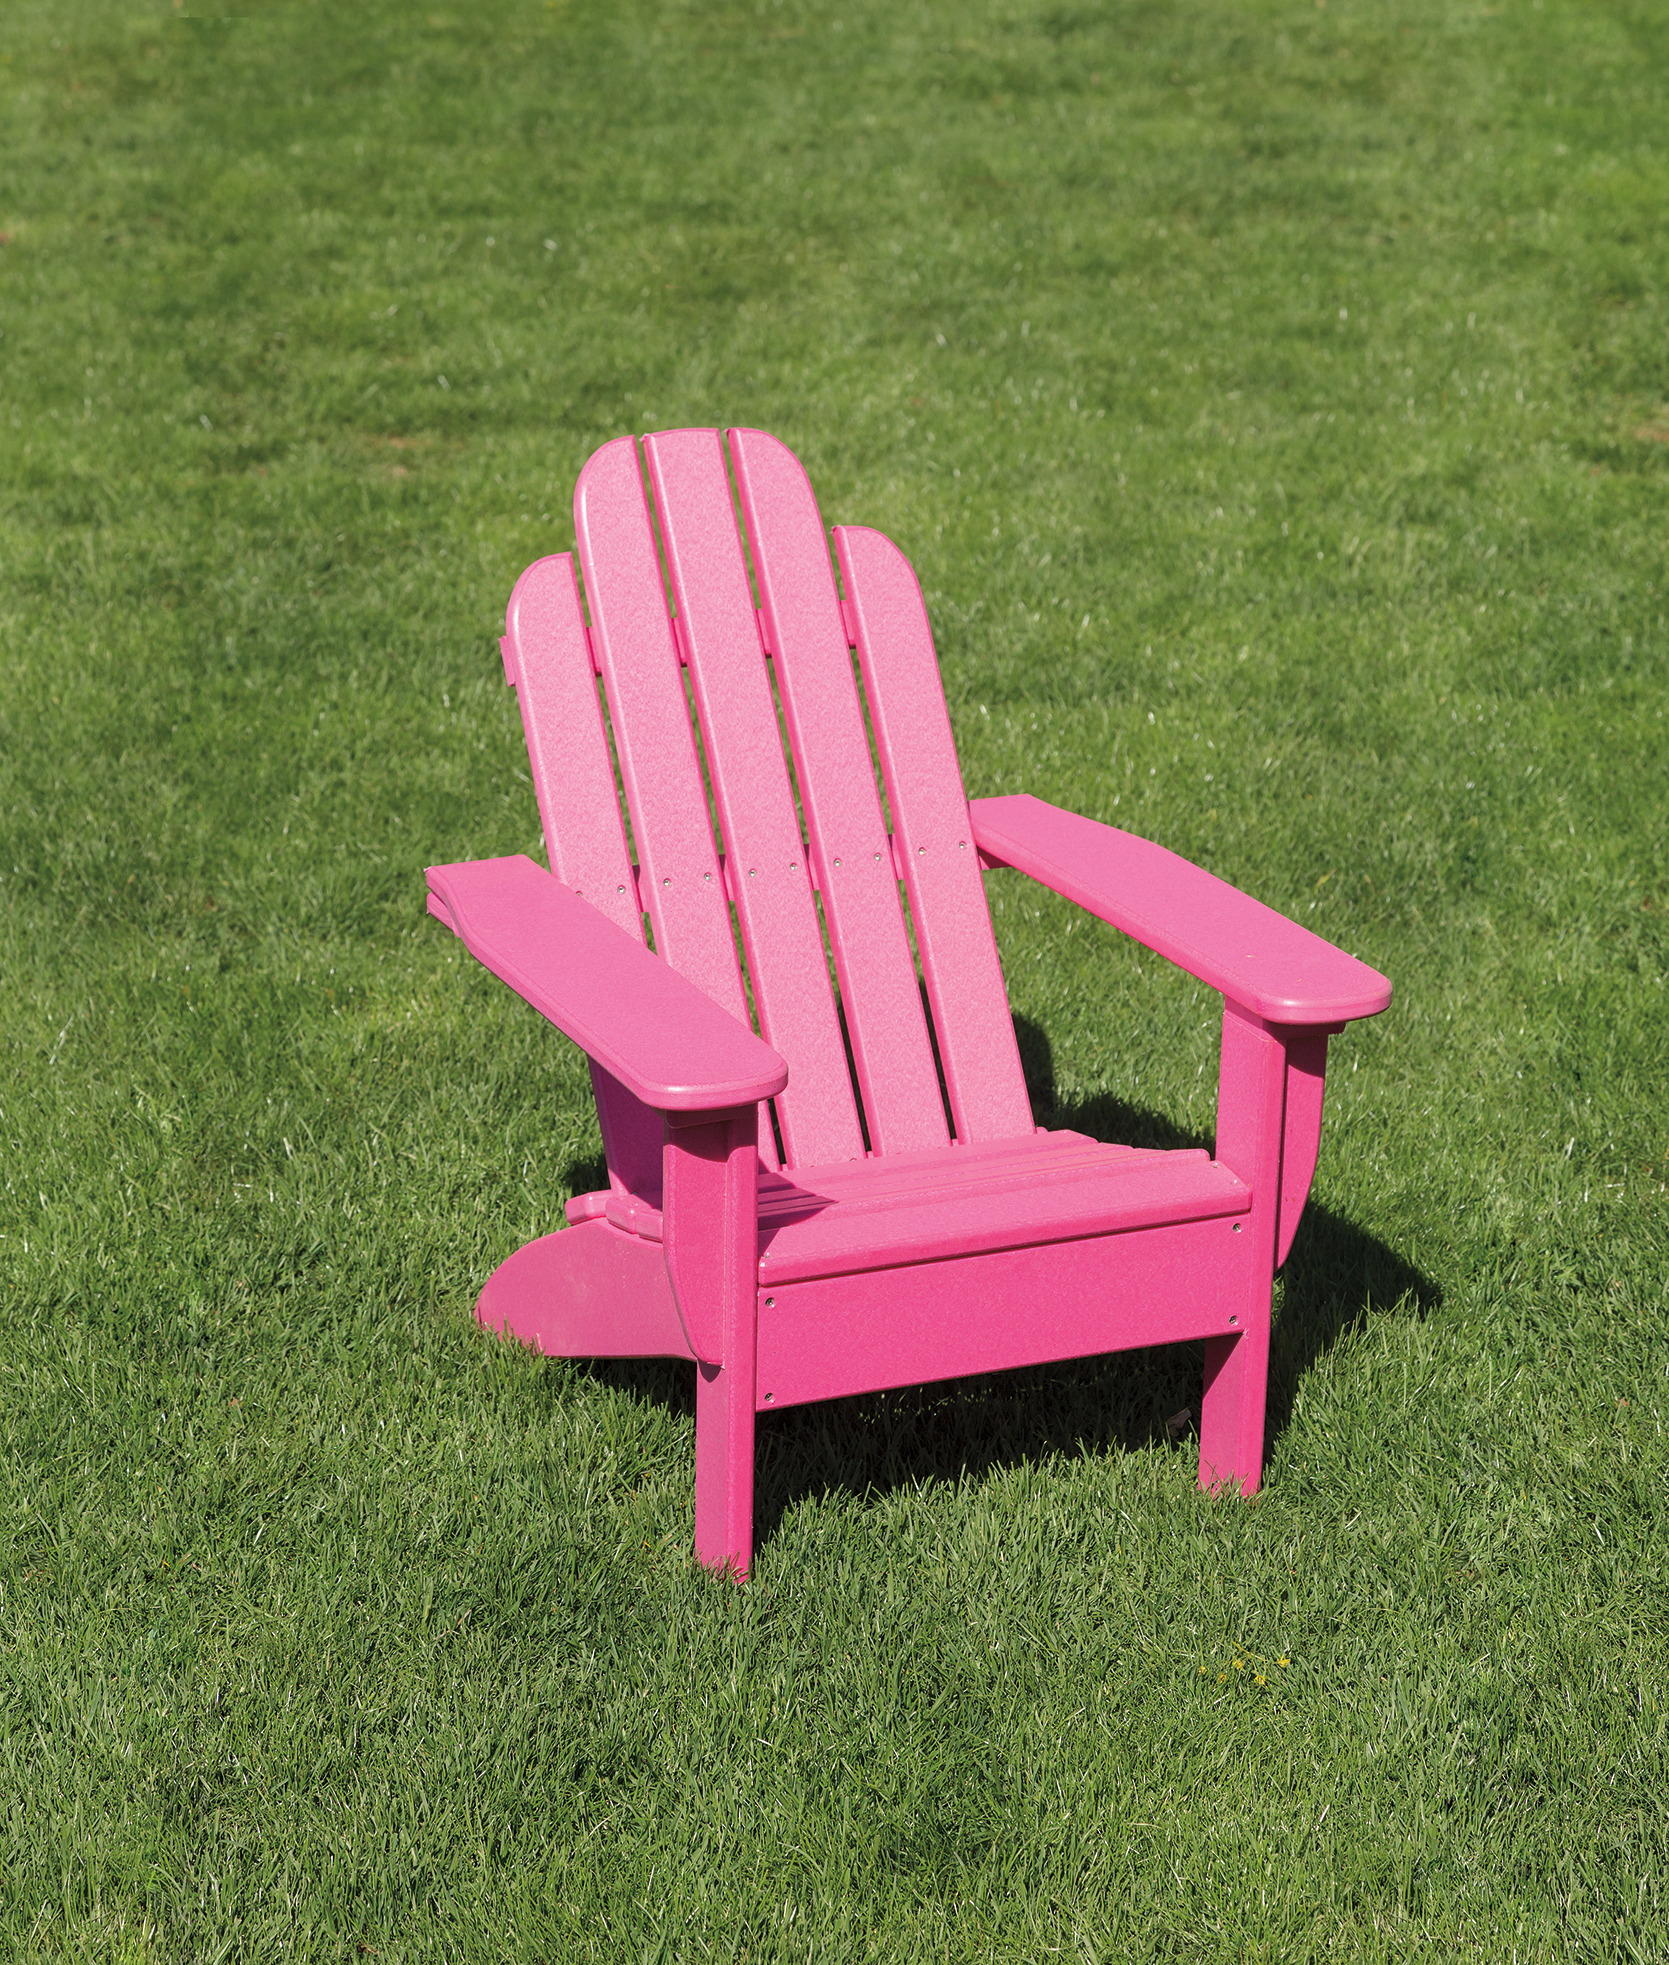 Kid Adirondack Chair Kids Adirondack Chair This And That 4 You 888 299 6190